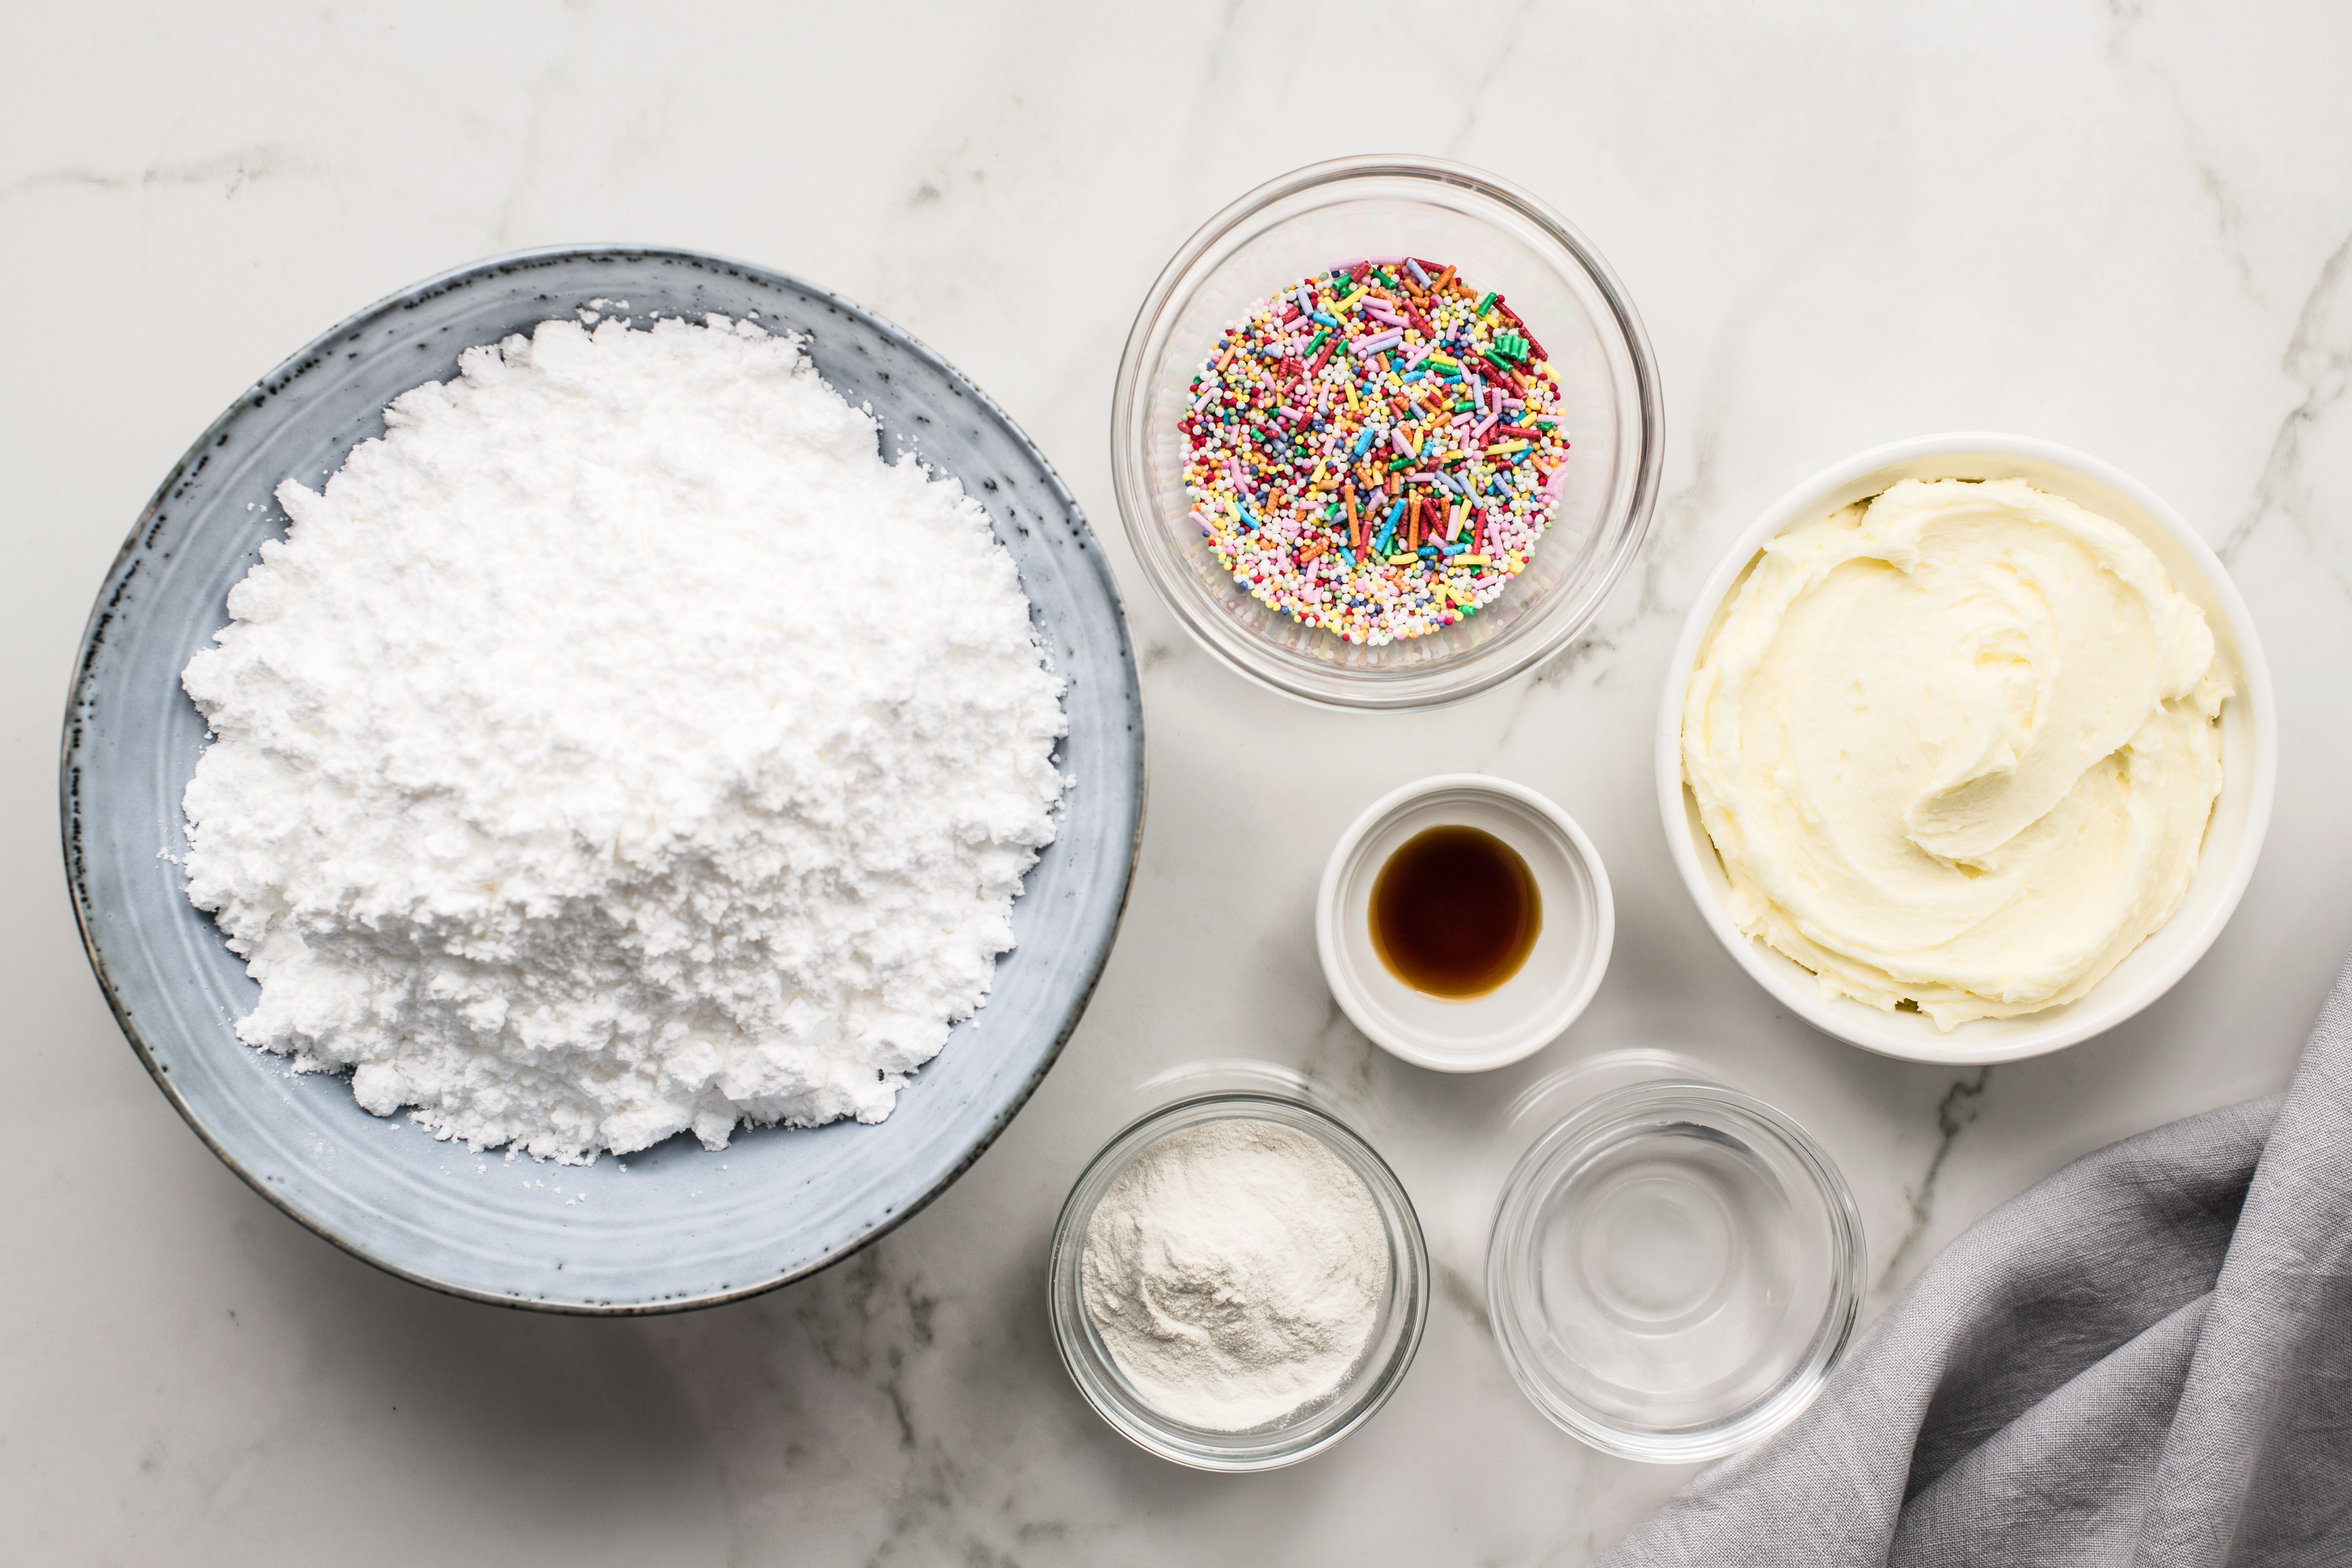 Ingredients for the icing